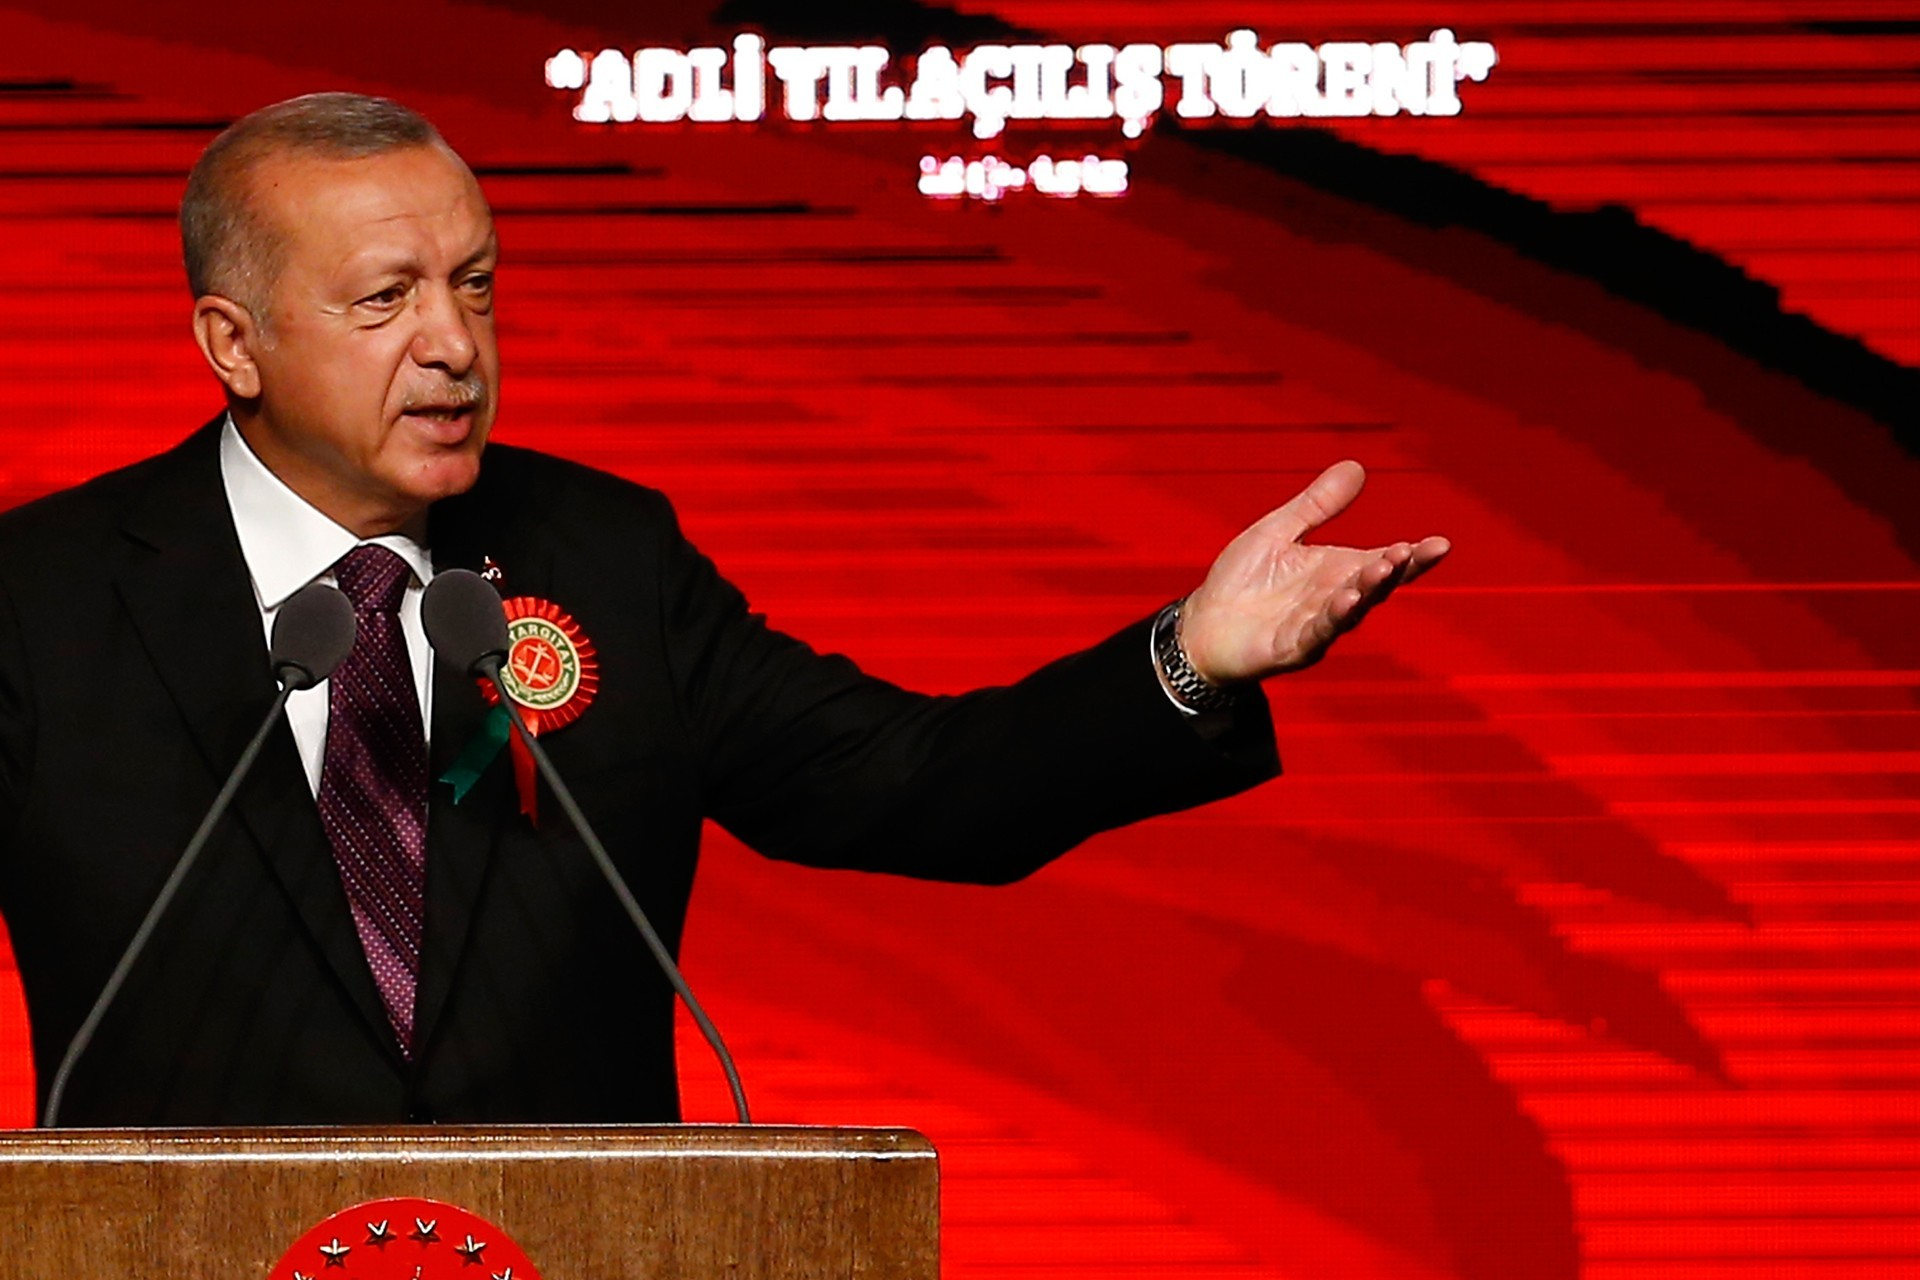 Erdoğan gives signals of interference in bar association elections!